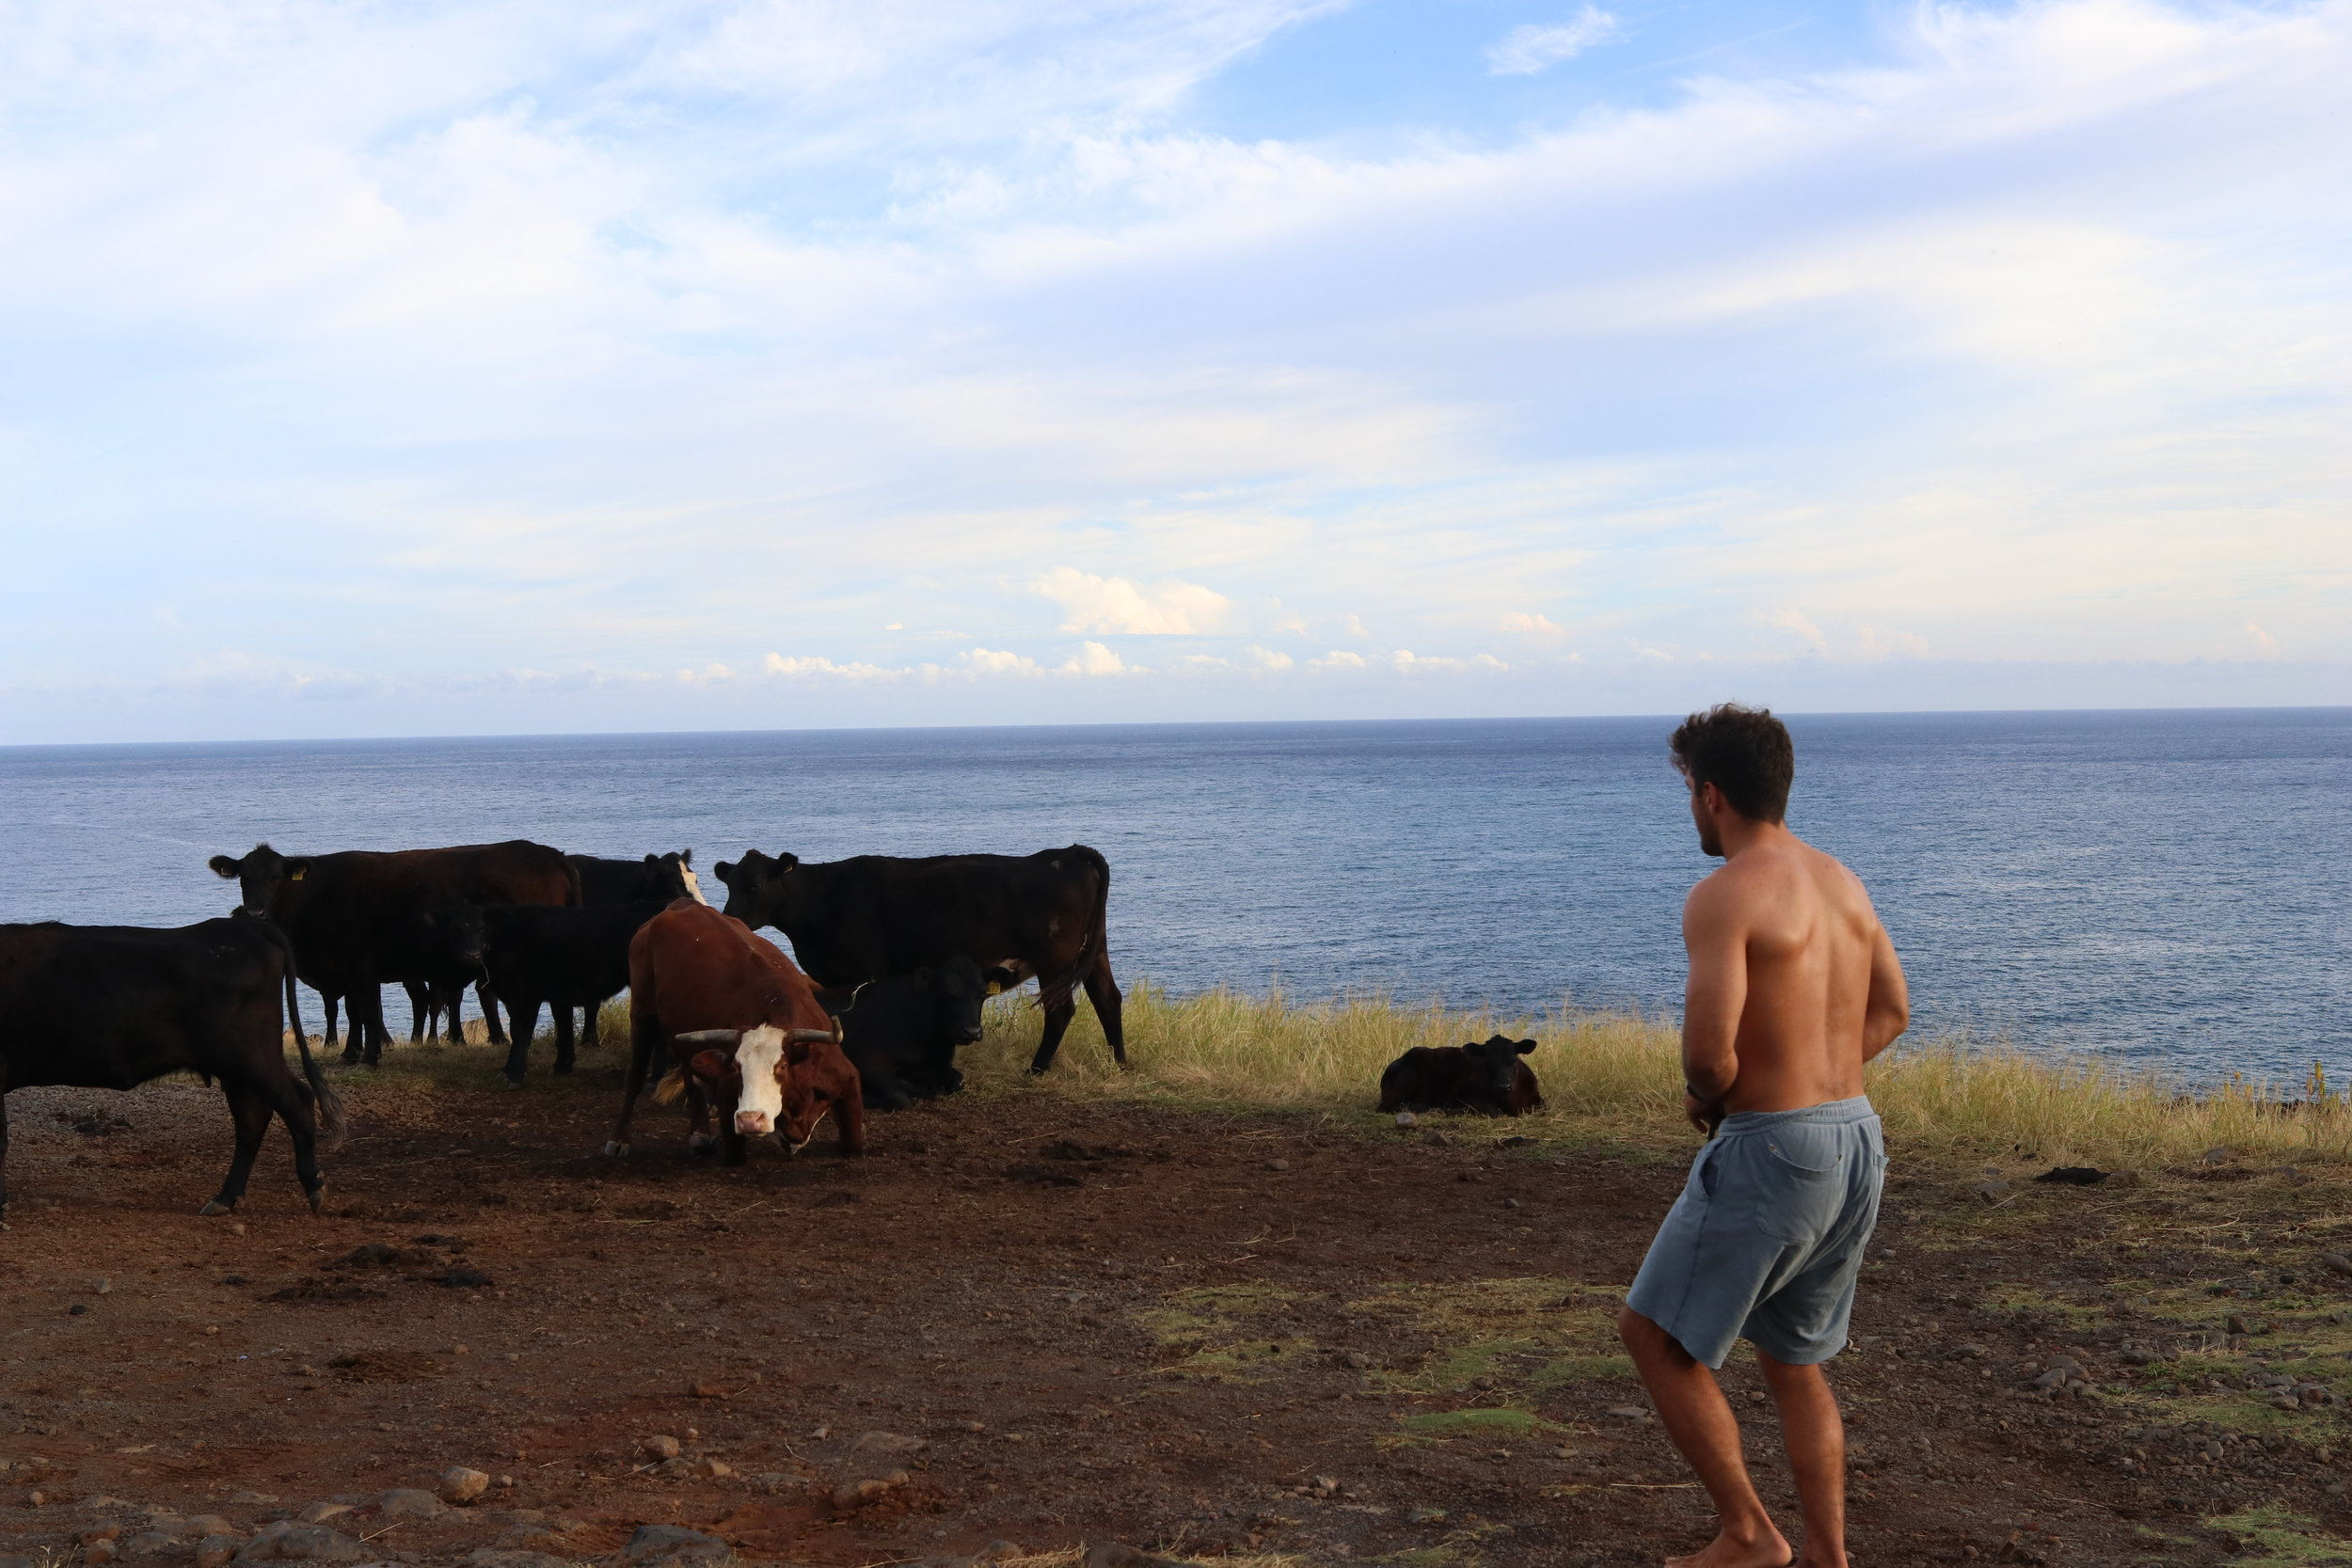 Turns out you should not approach a group of cattle when there is young calf around. T-Bone VS. T-Bone.